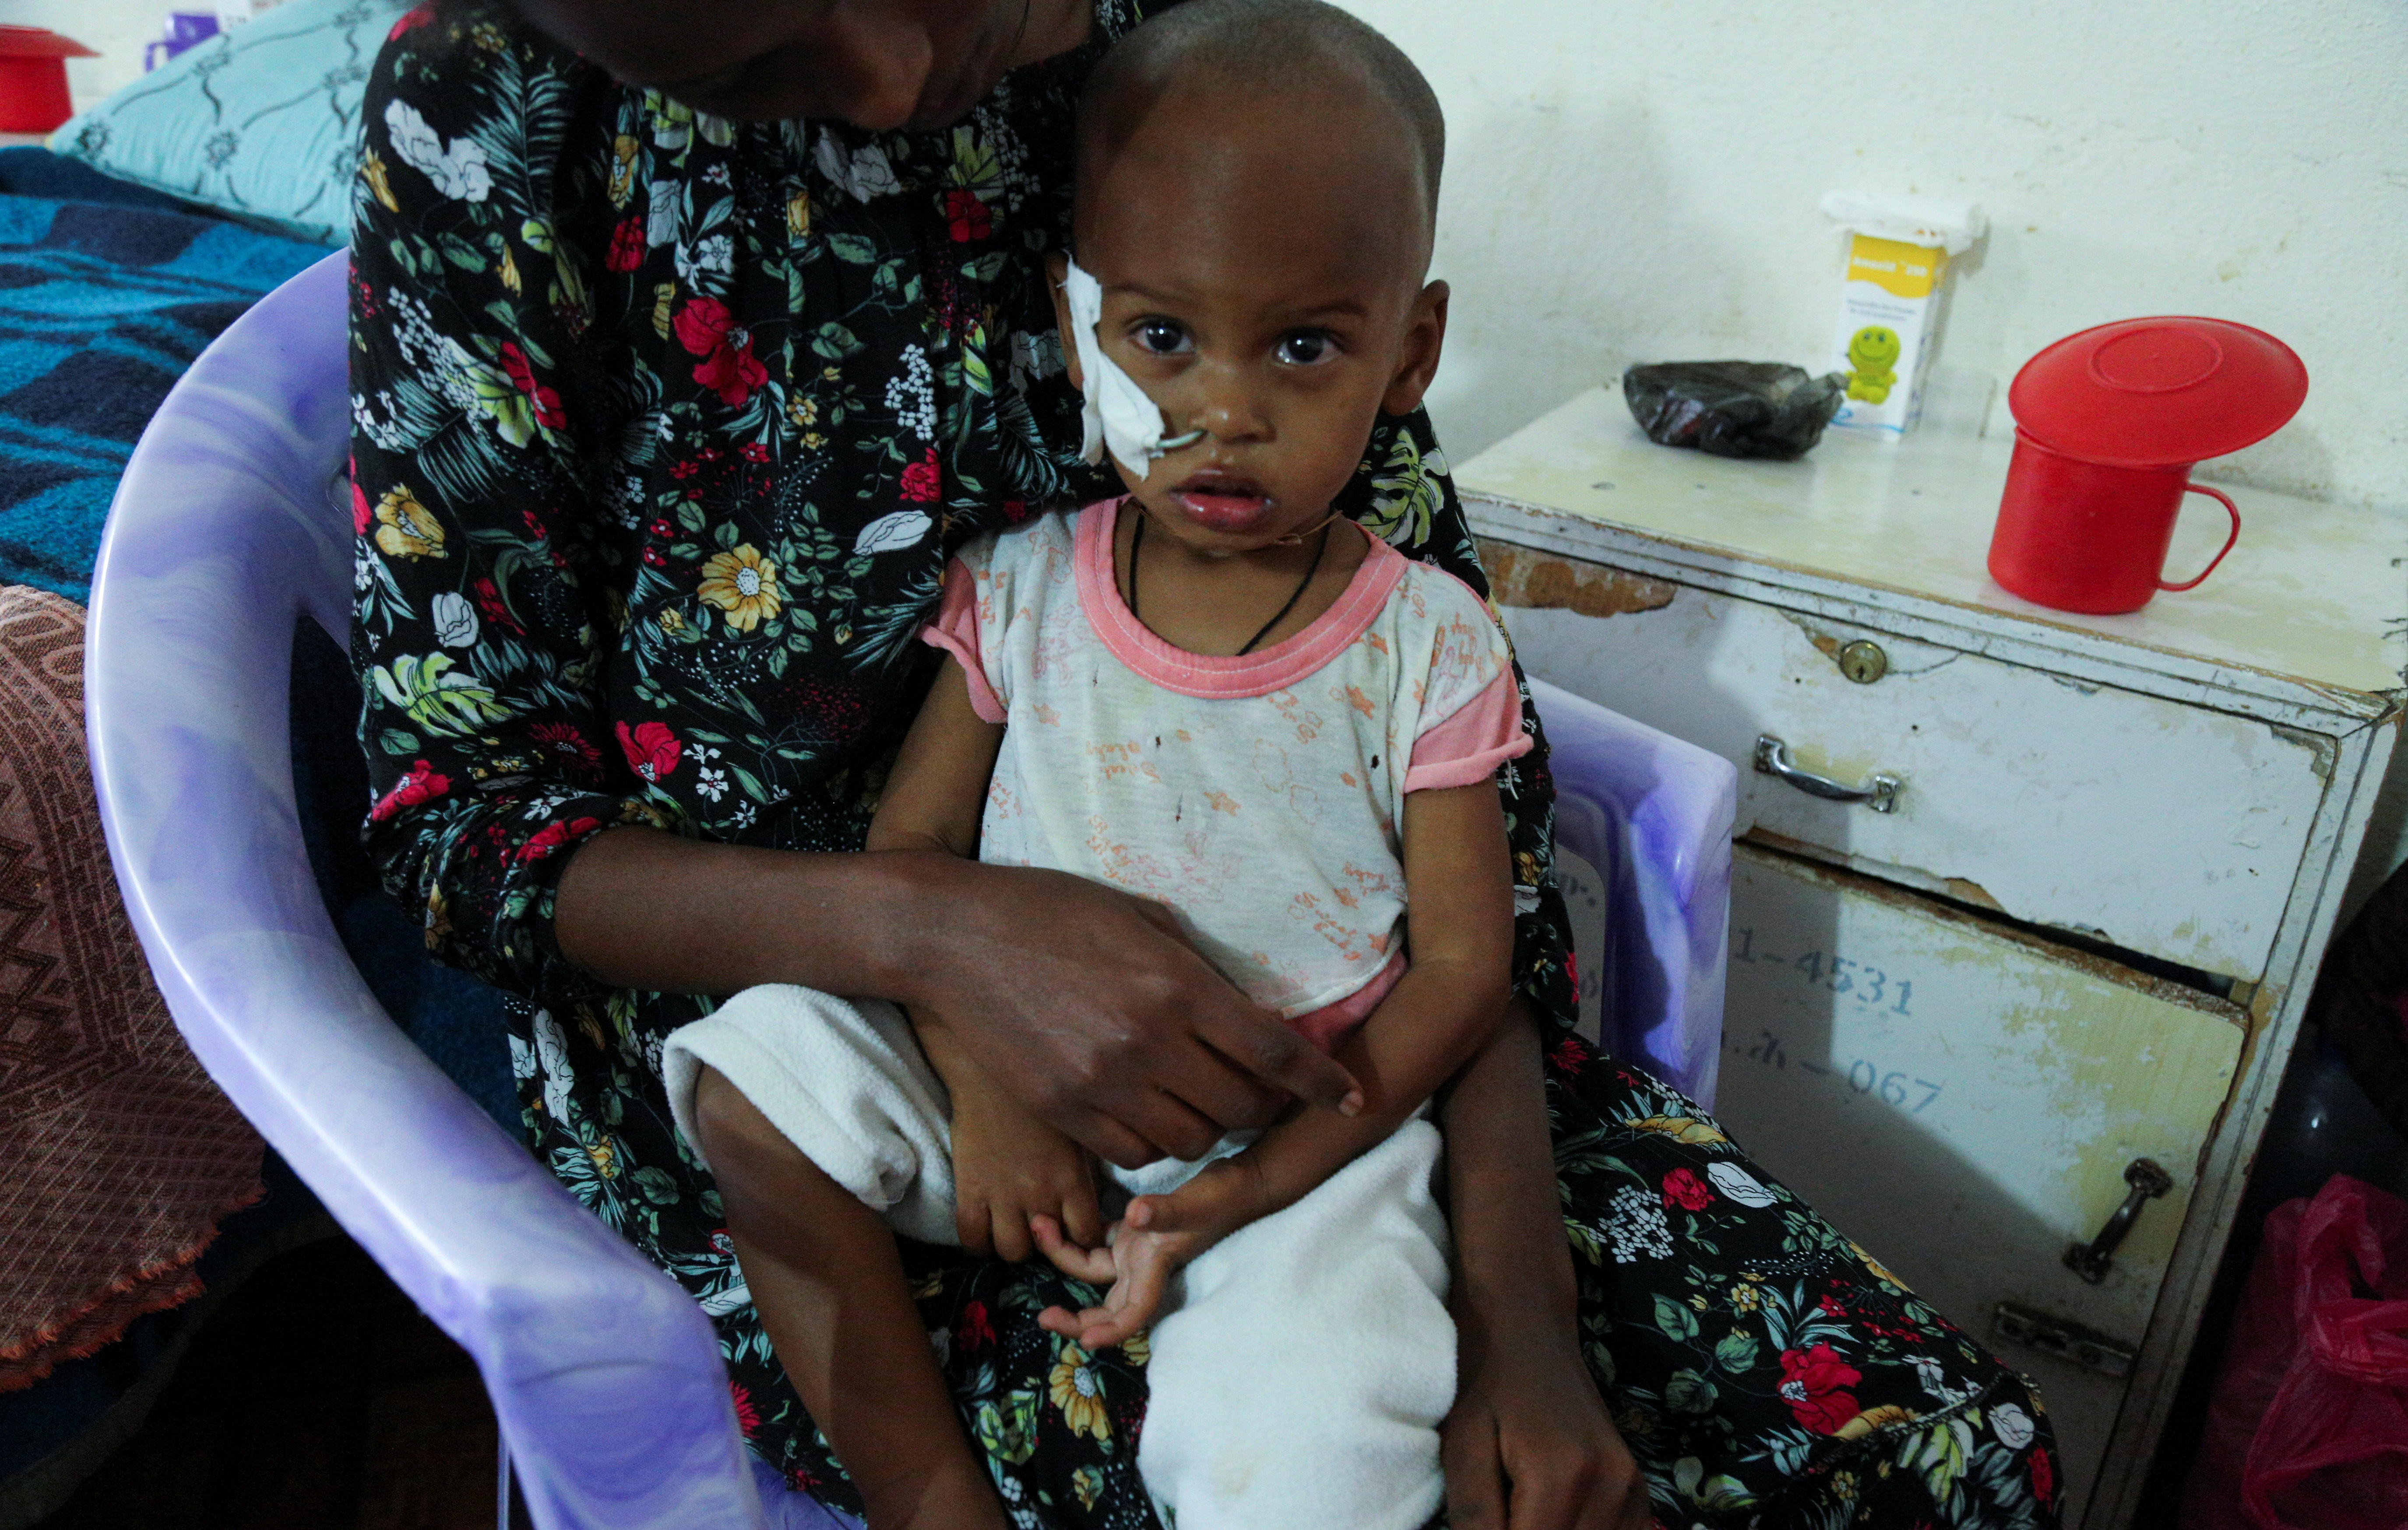 Aamanuel Merhawi, aged one year and eight months, who suffers from severe acute malnutrition, is seen fitted with a nasogastric tube at Wukro hospital in Wukro, Tigray region, Ethiopia July 11 2021.  REUTERS/Giulia Paravicini